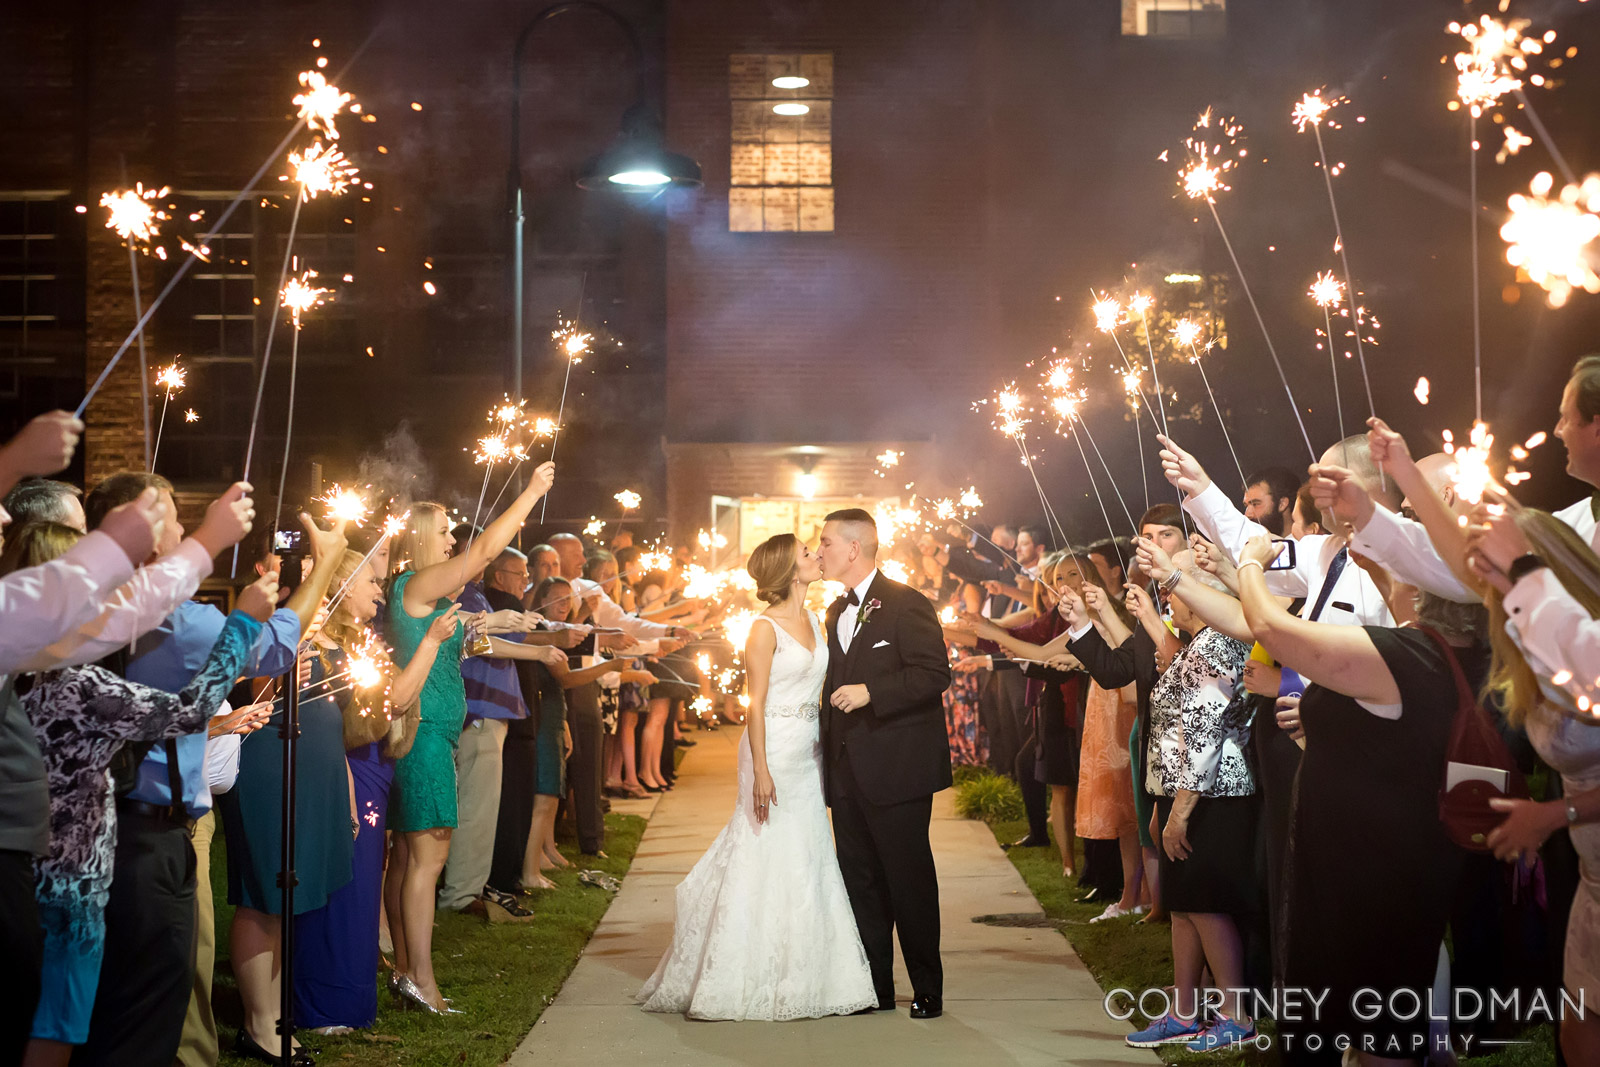 Atlanta-Wedding-Photography-by-Courtney-Goldman-39.jpg